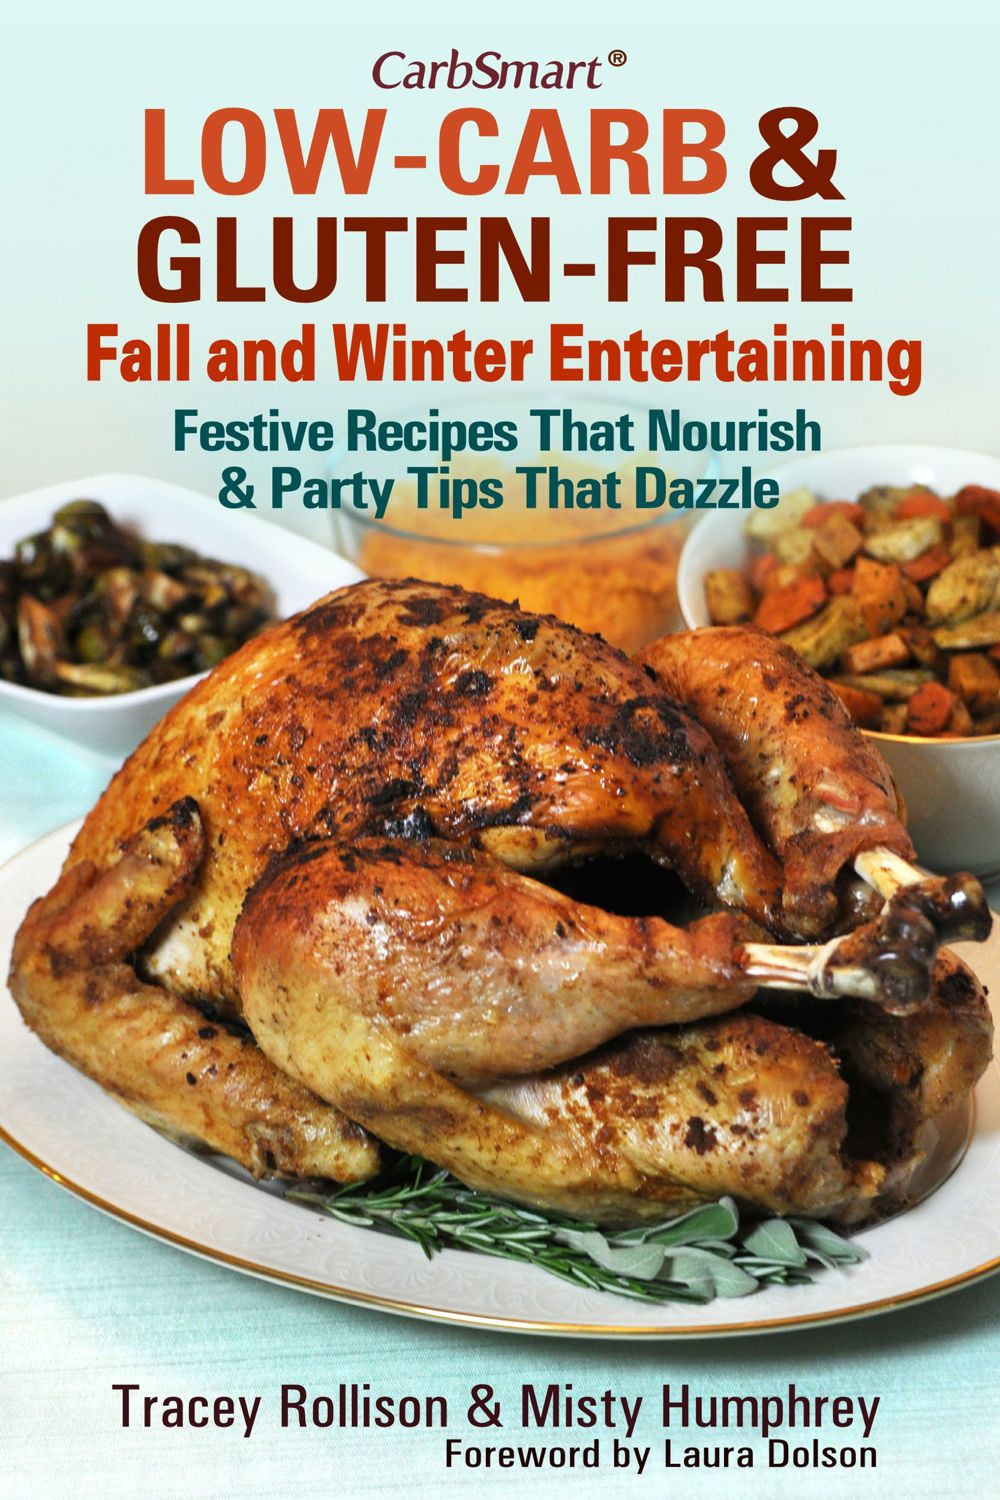 Low Carb Fall Recipes  CarbSmart Inc Releases CarbSmart Low Carb & Gluten Free